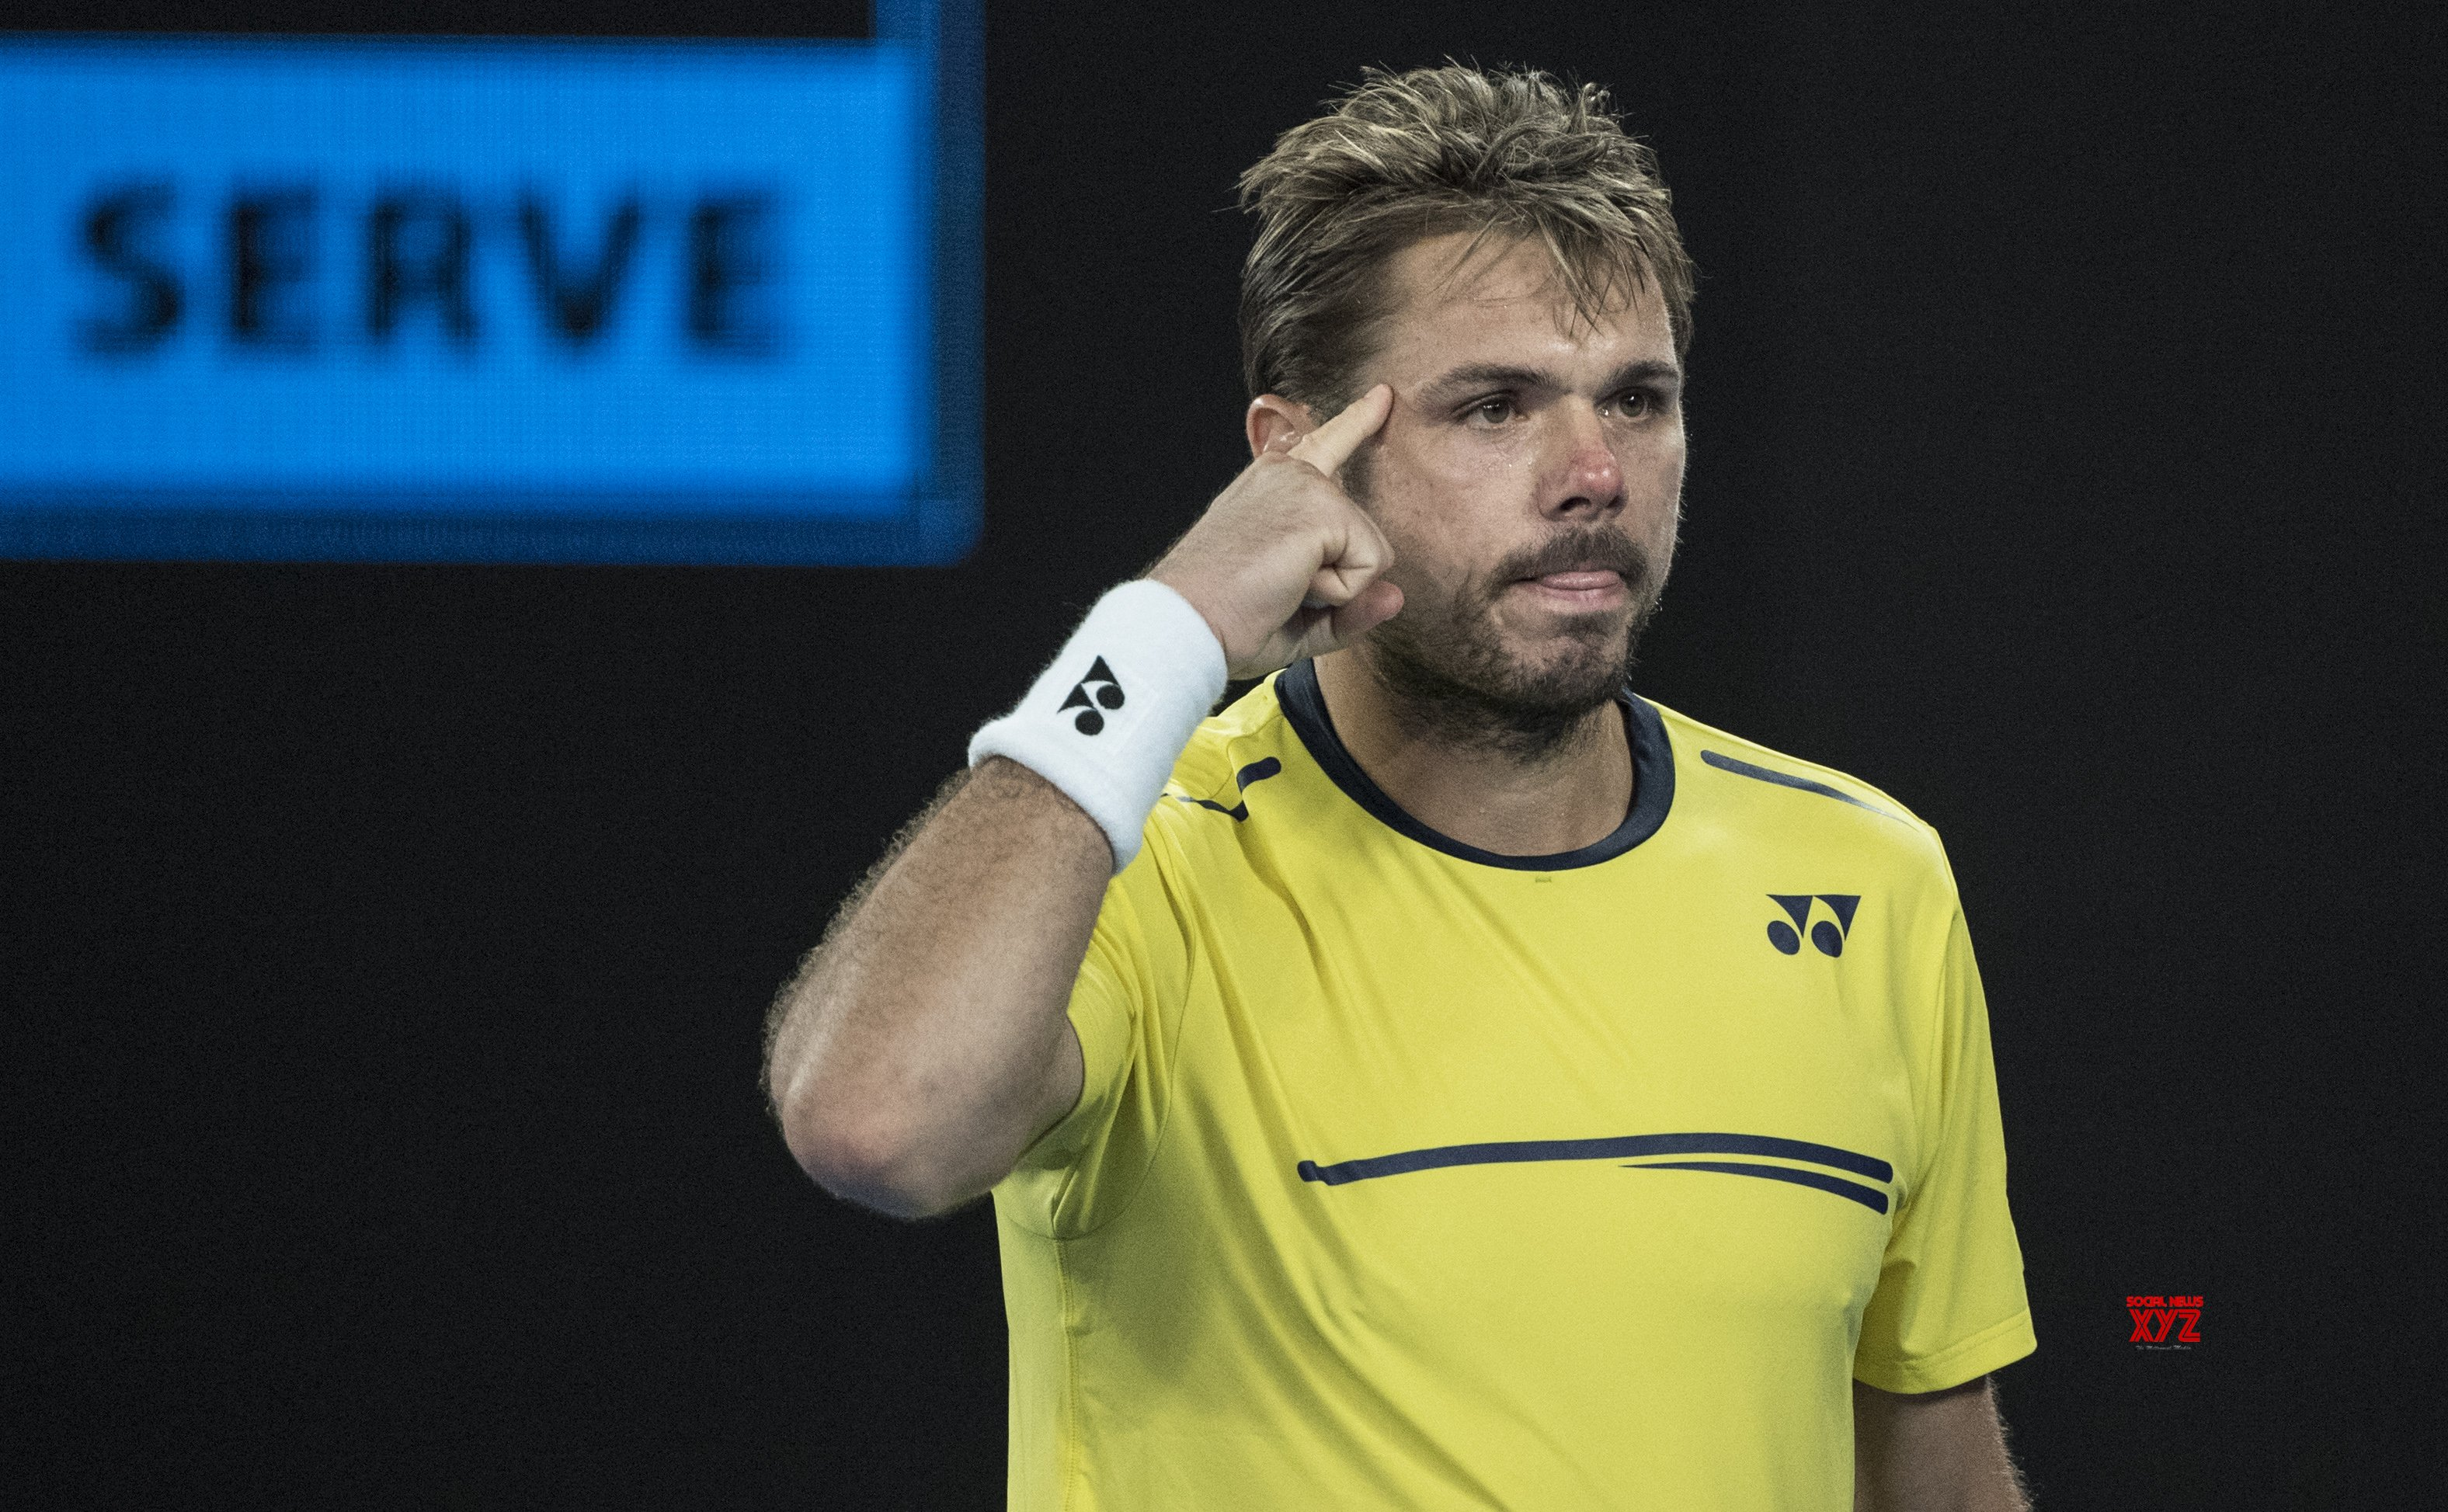 Wawrinka to face Federer in French Open quarter-finals